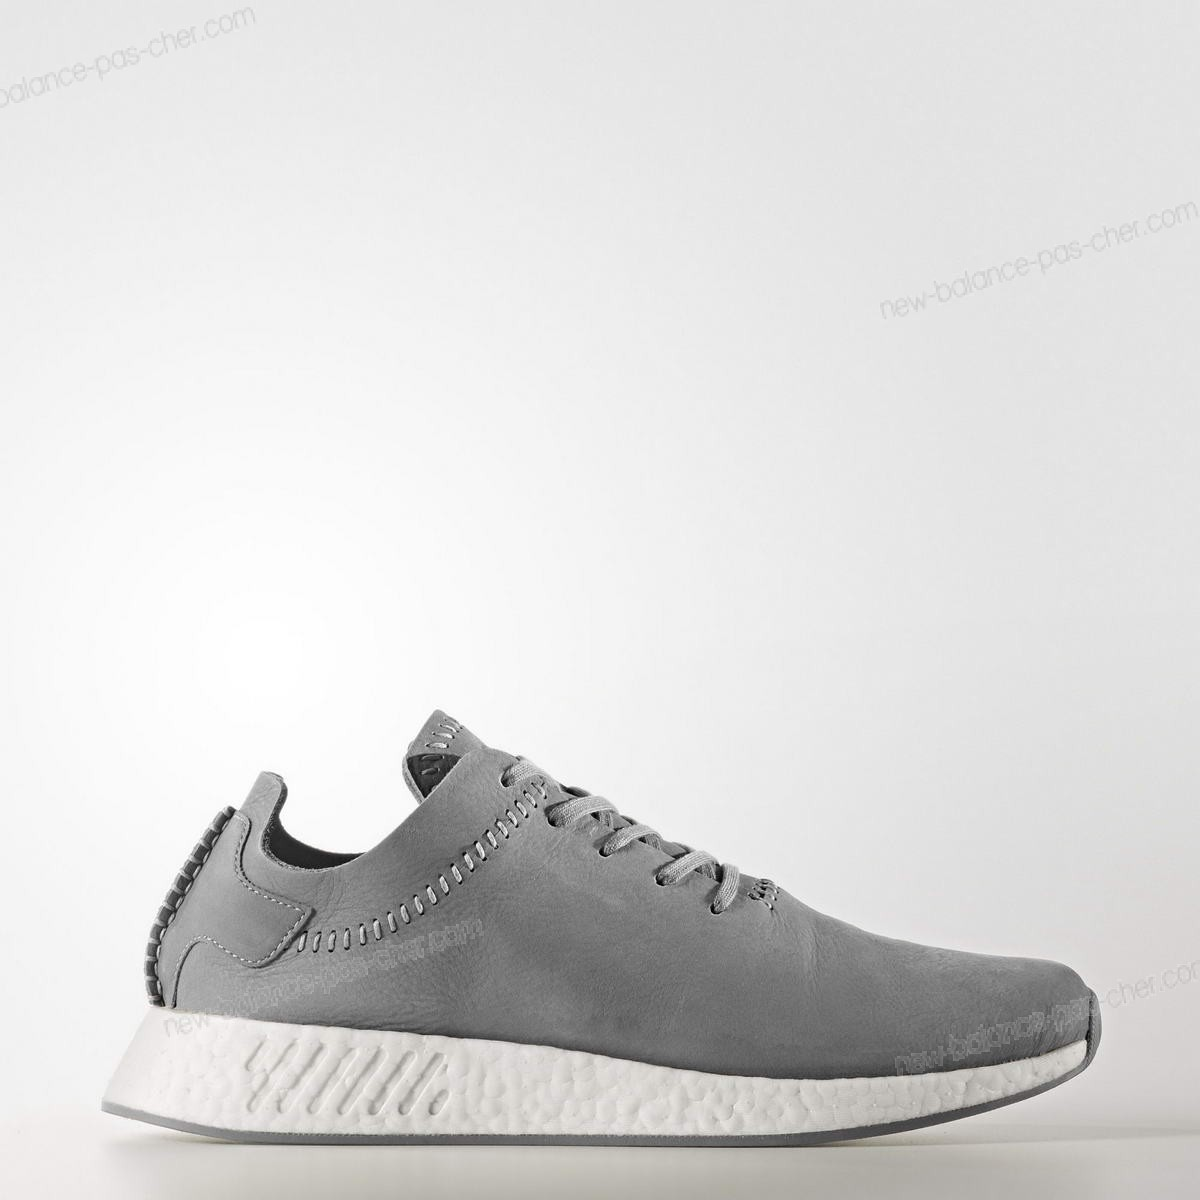 Adidas x Wings + Horns Nmd_r2 Cenduité En Cuir Couleur Unie ★ ★ - Adidas x Wings + Horns Nmd_r2 Cenduité En Cuir Couleur Unie ★ ★-31